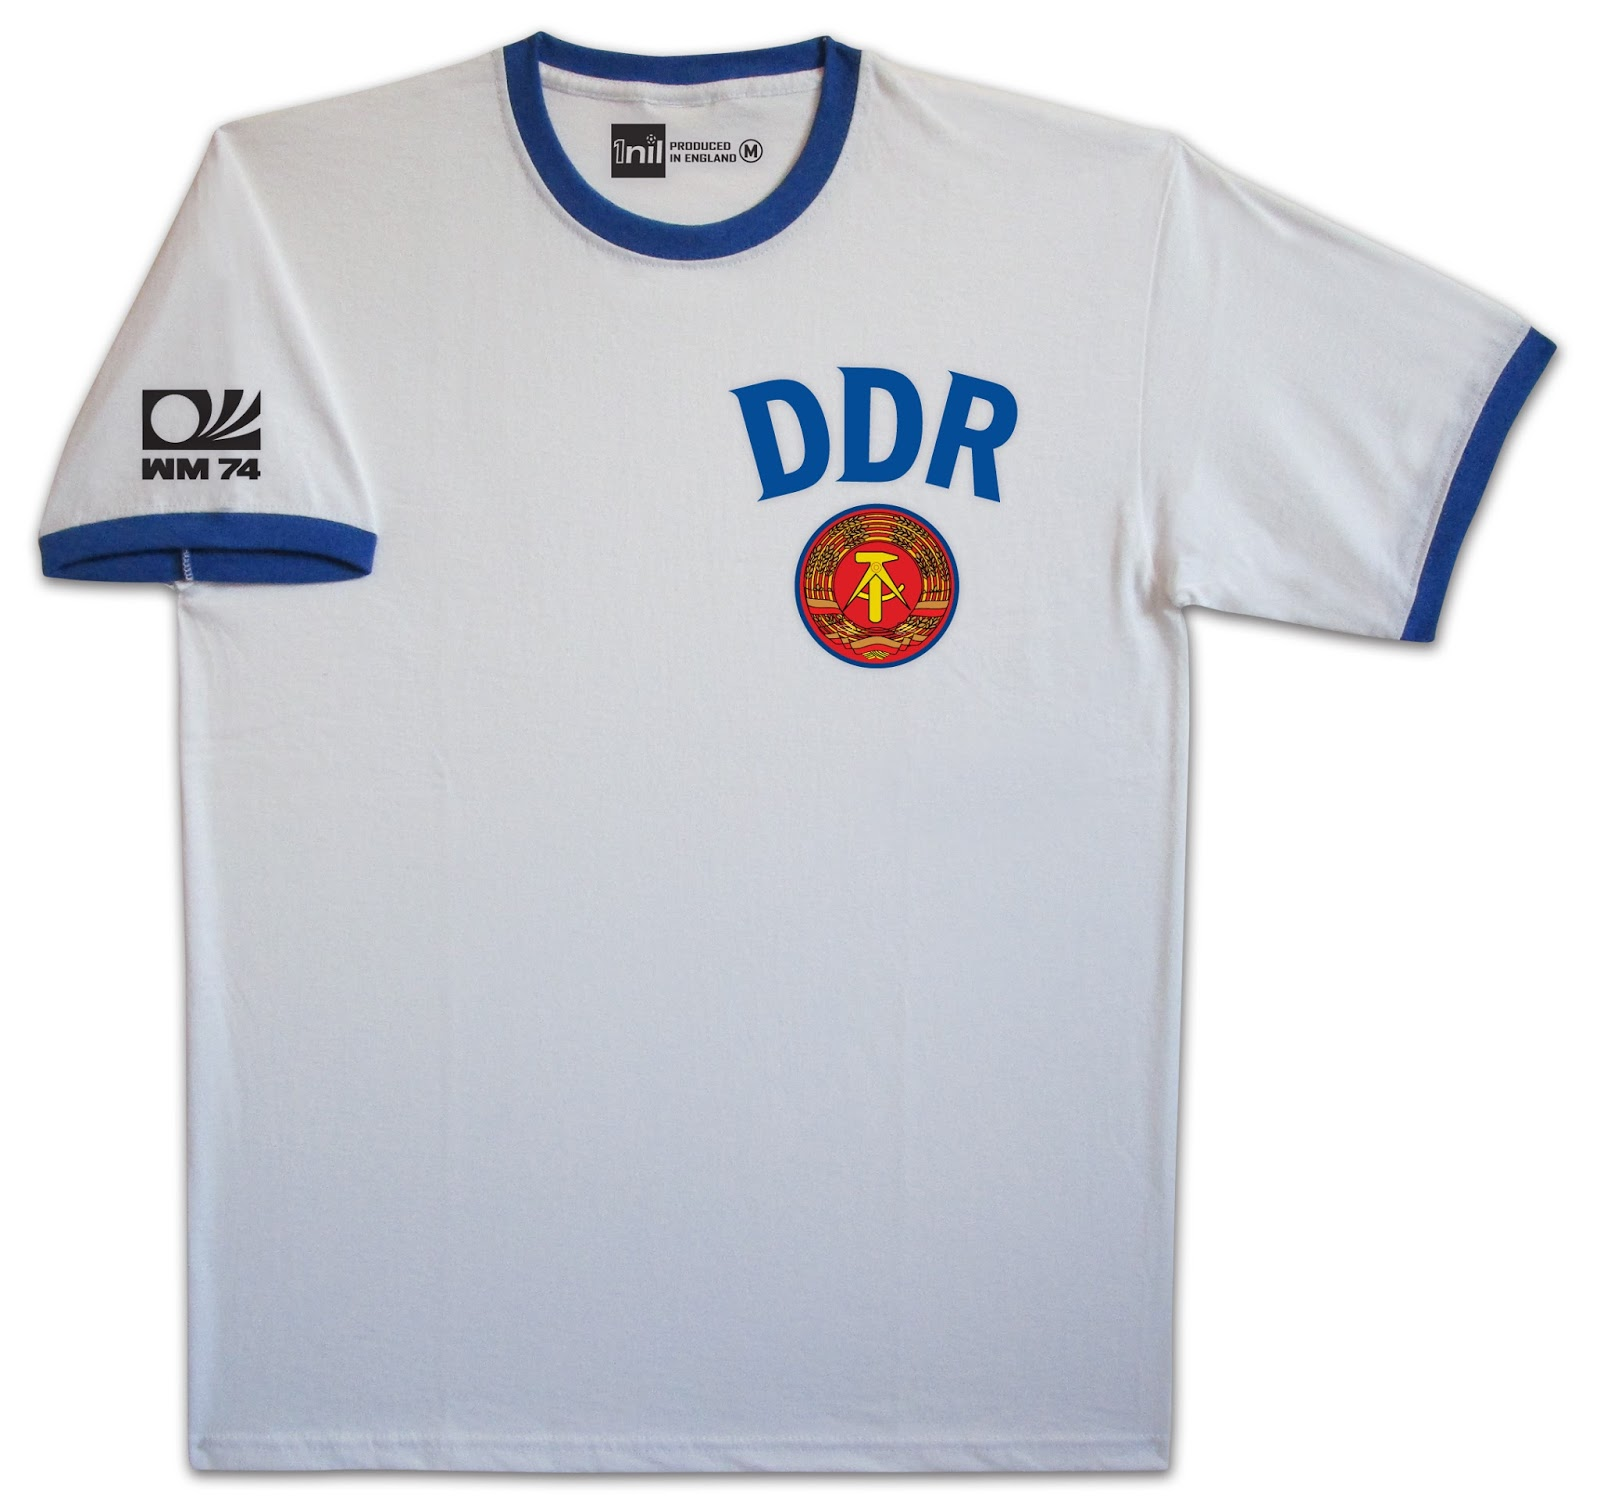 f4a58de2c Toffs Retro Football Shirts – EDGE Engineering and Consulting Limited